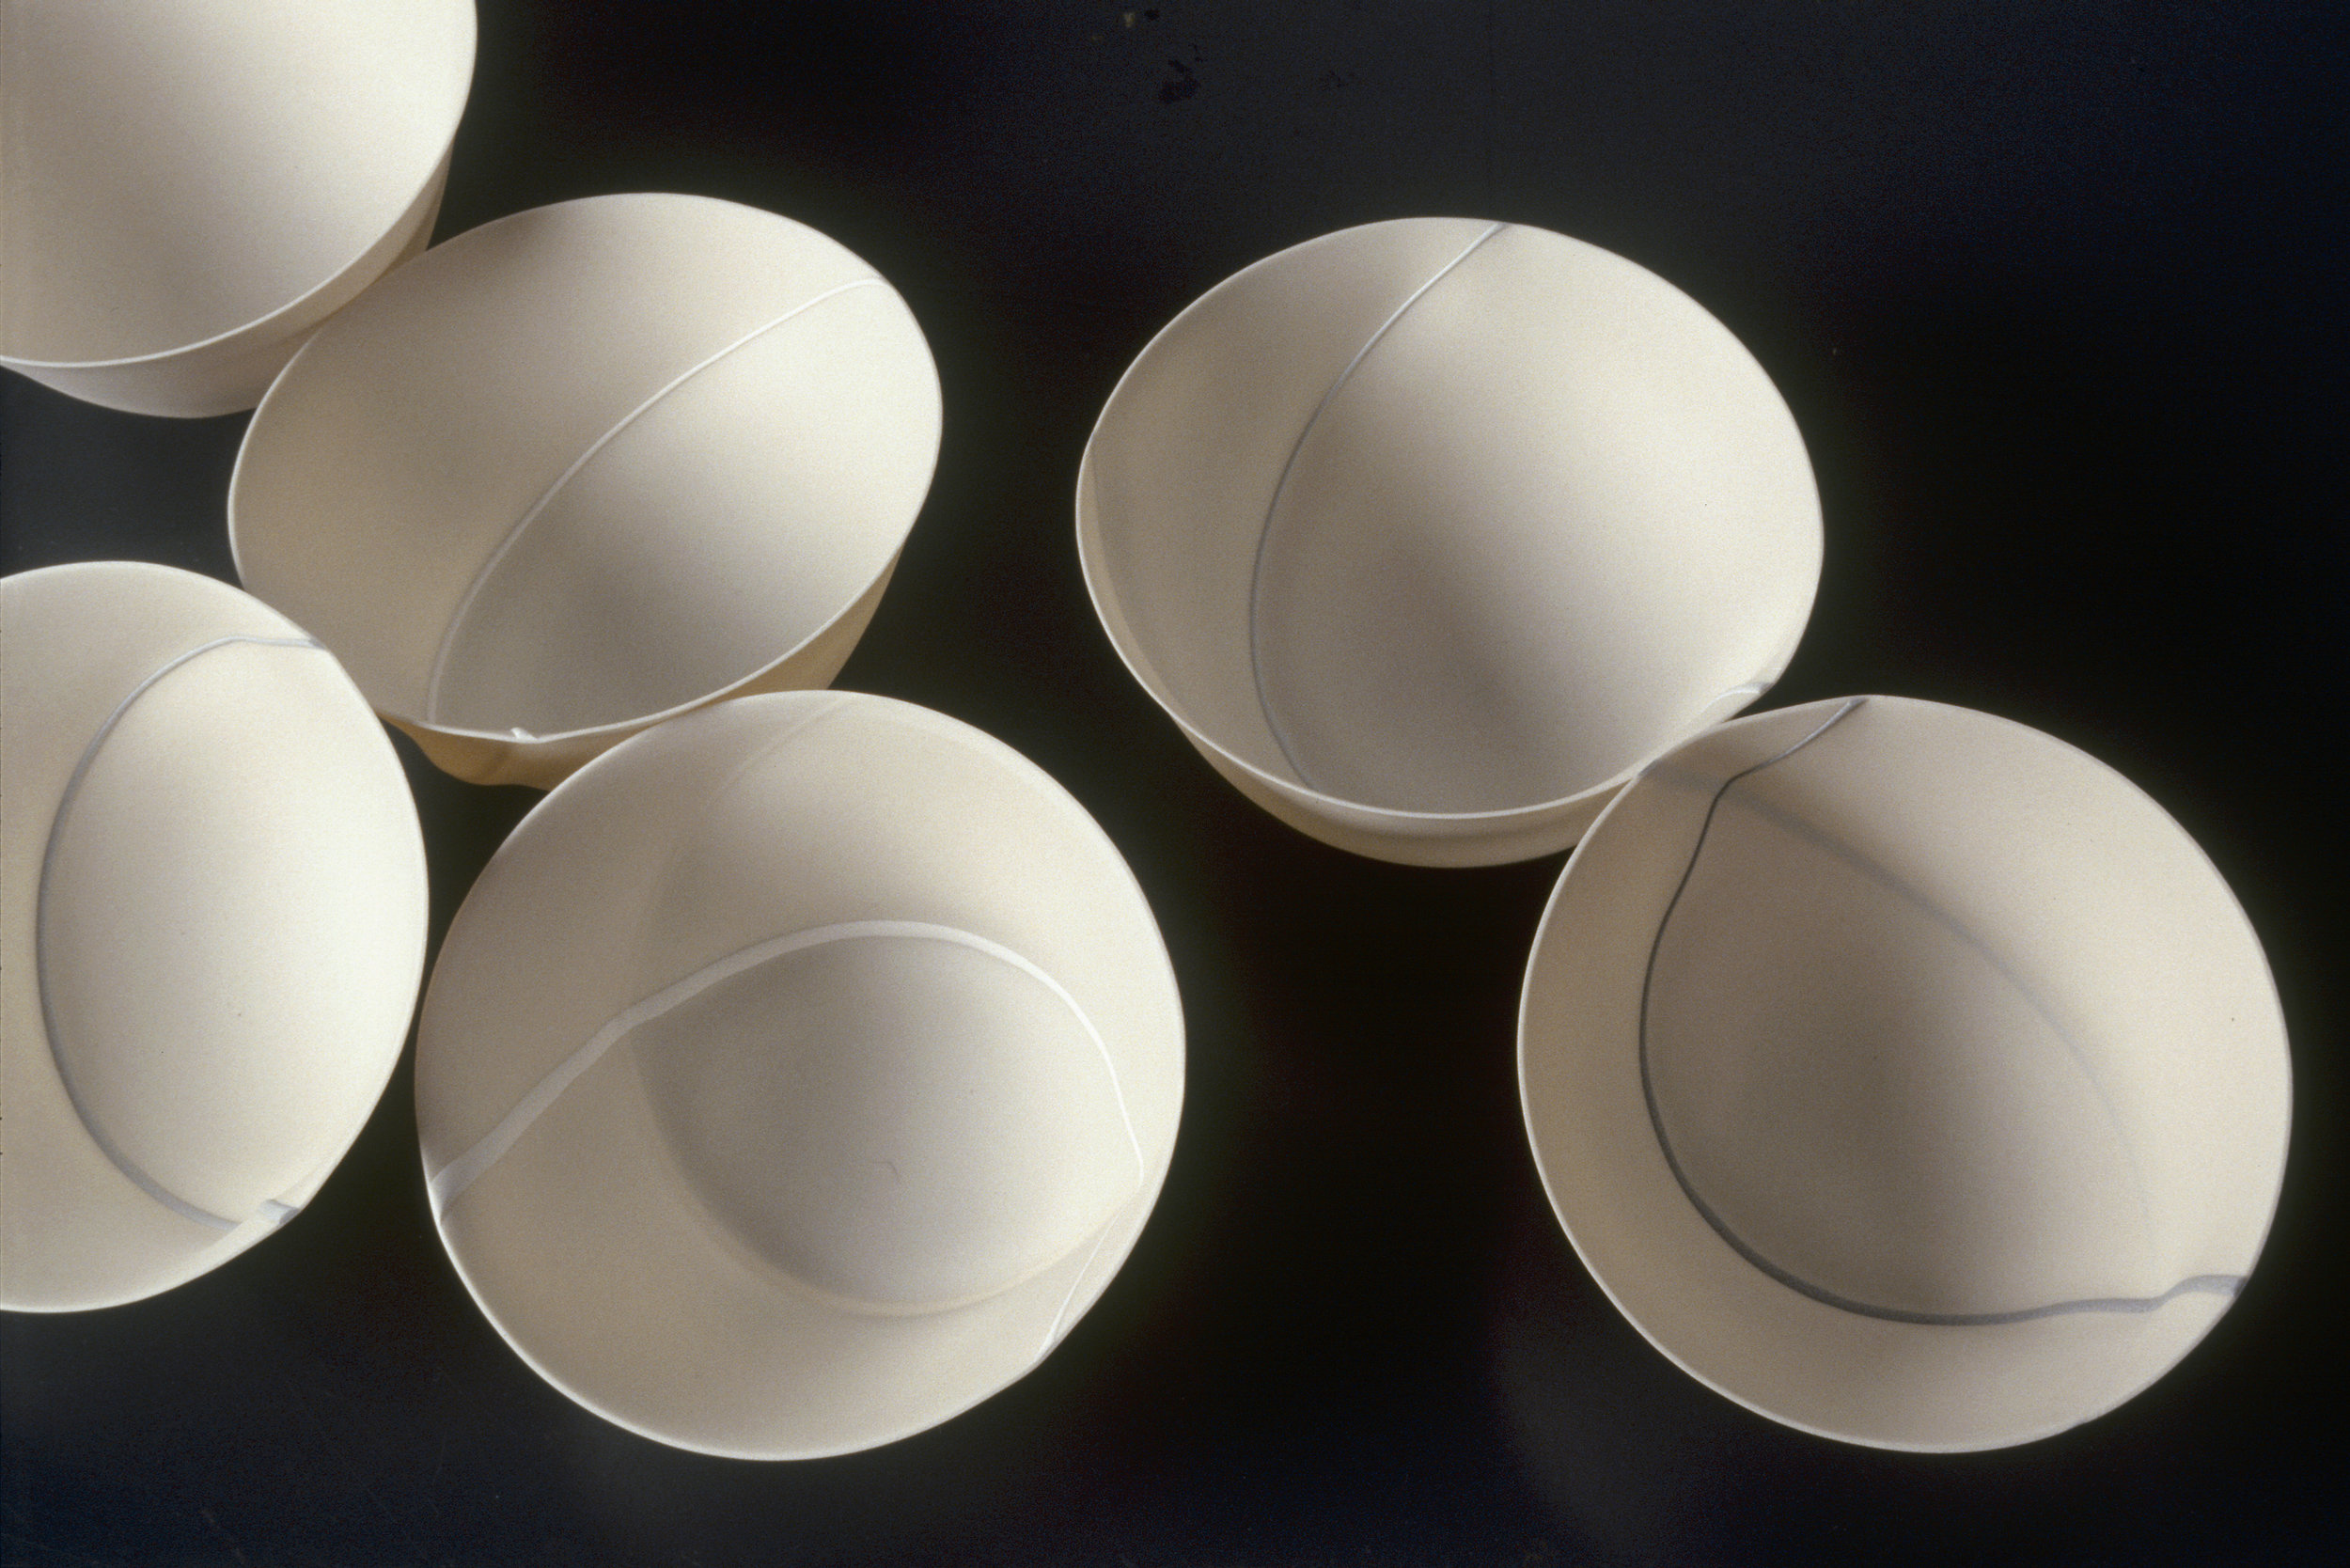 TRACE  SPUN PORCELAIN VESSELS  SMALL BONE CHINA IN - OUT  PHOTO: GRAHAM MURRELL